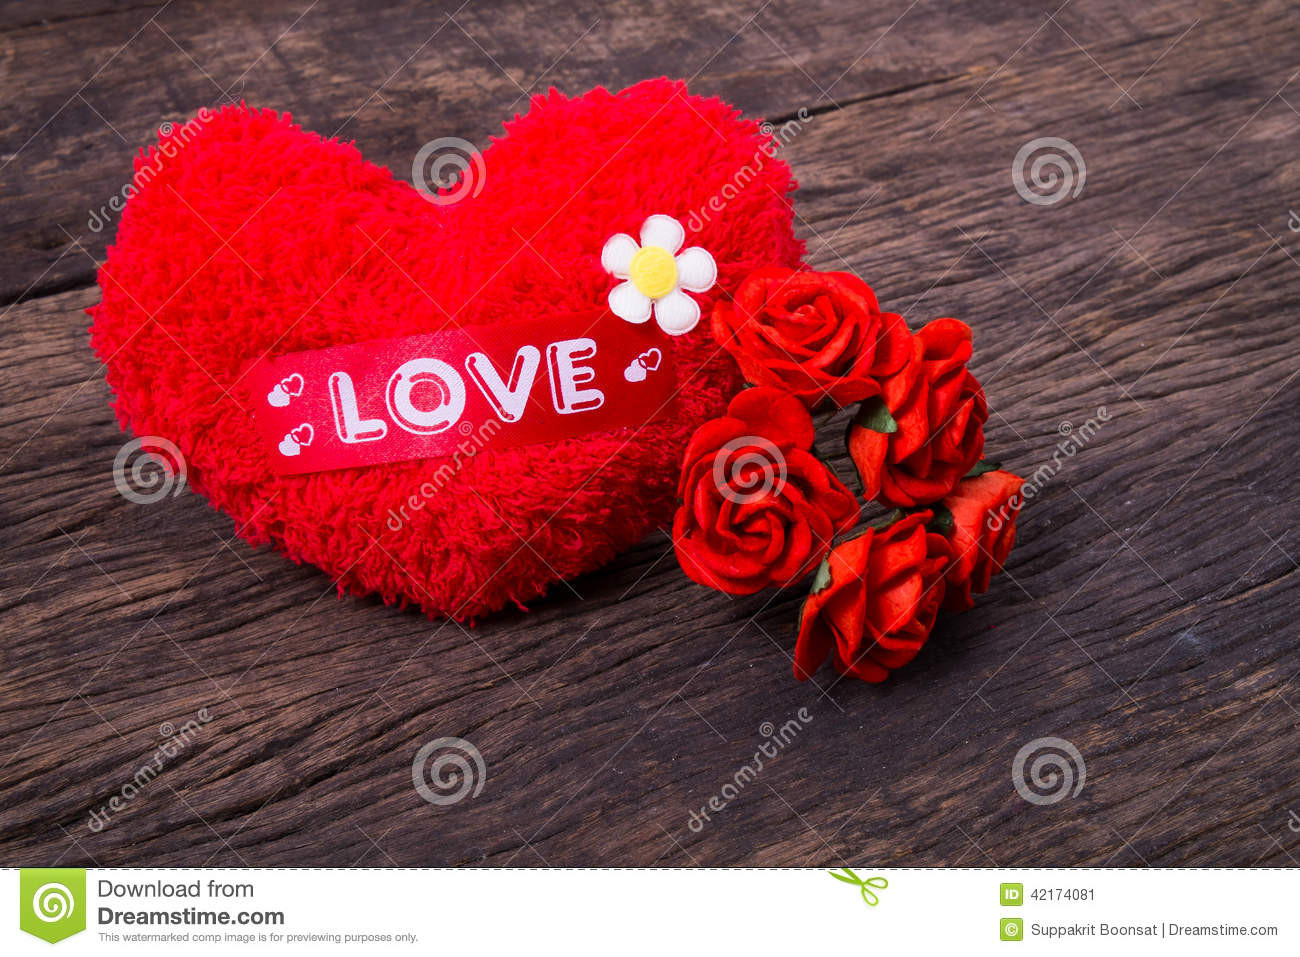 Red Heart with Love Beautiful Red Heart with Love Word and Roses Royalty Free Stock Of Red Heart with Love Fresh Love Heart Impremedia